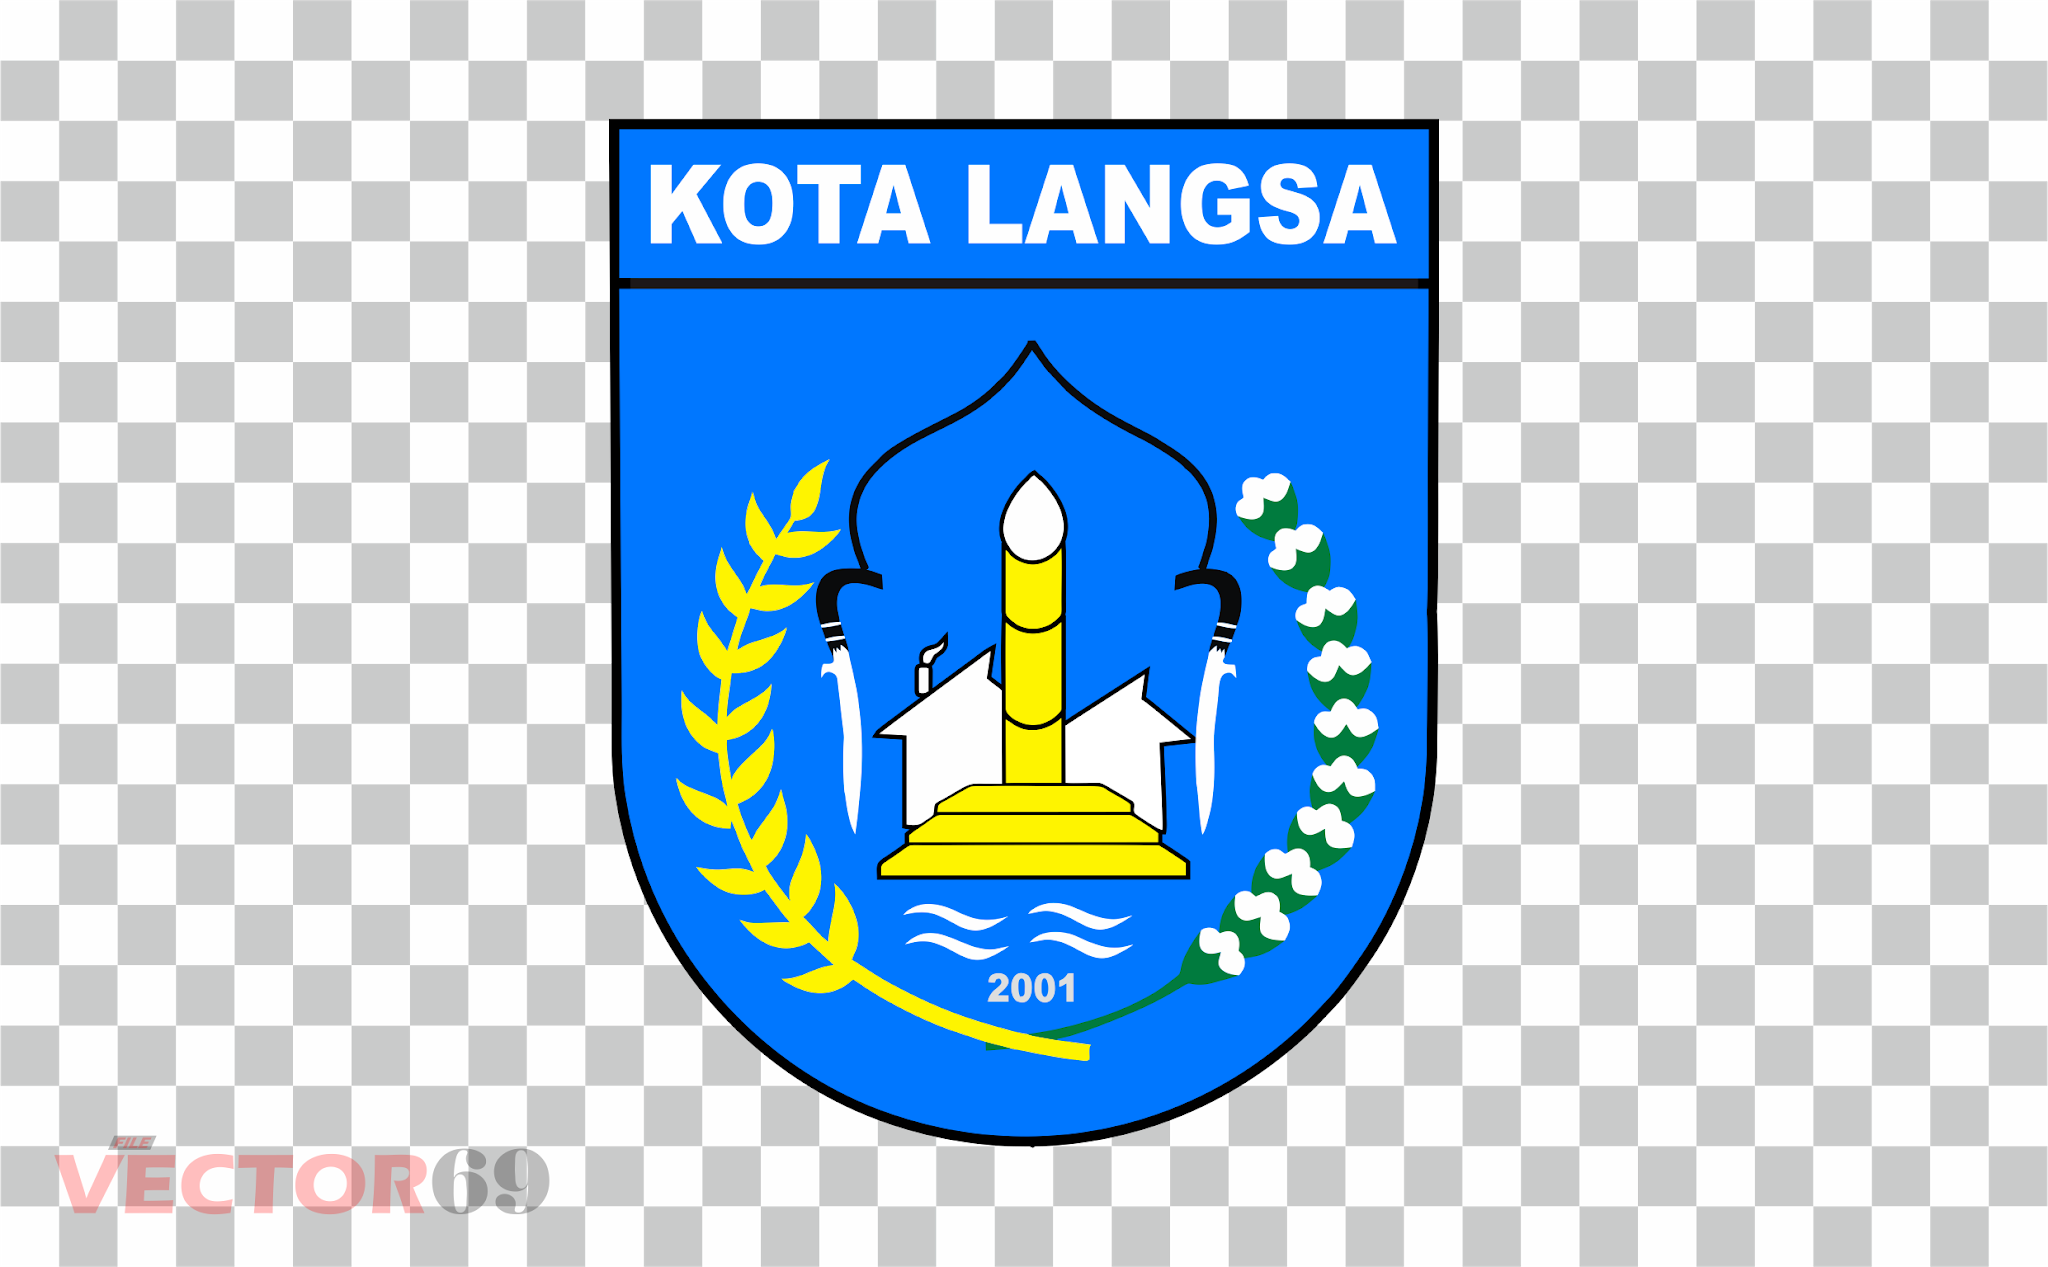 Kota Langsa Logo - Download Vector File PNG (Portable Network Graphics)